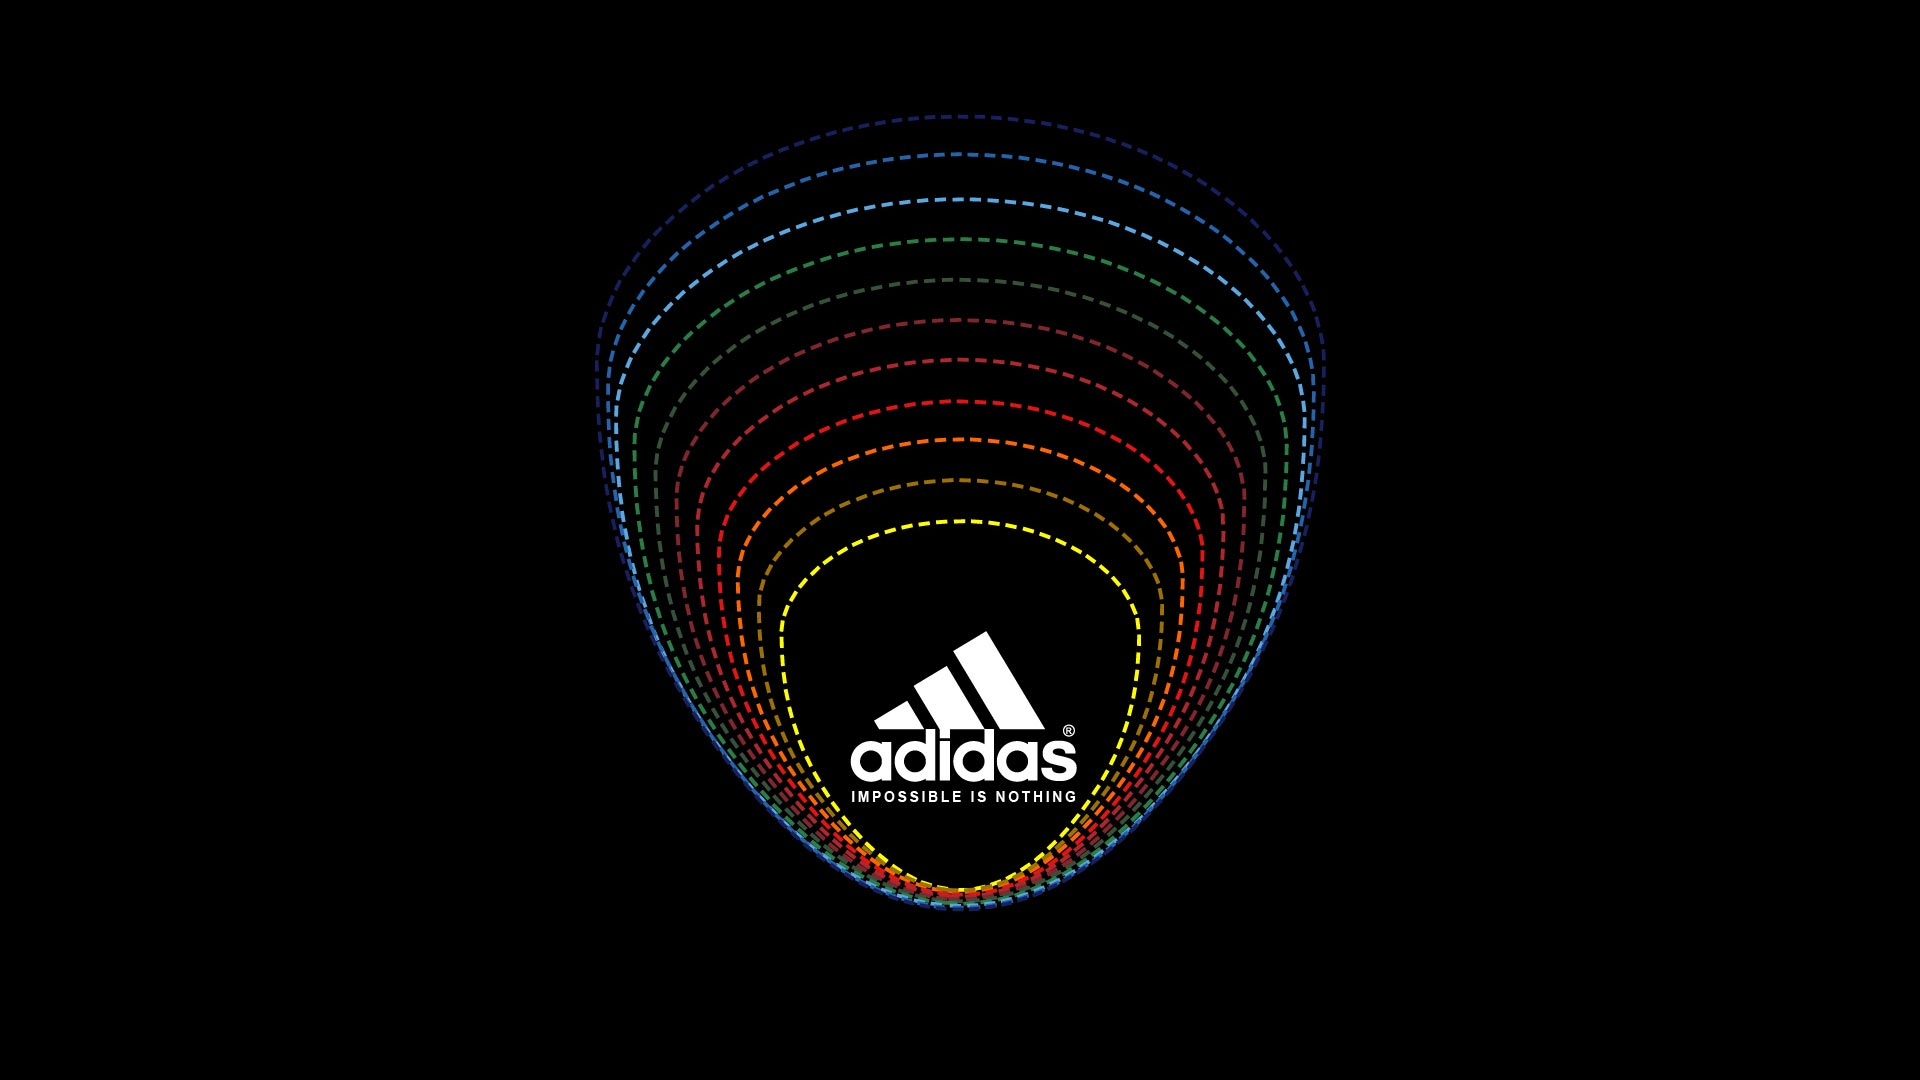 ADIDAS THEME SONG.... - YouTube